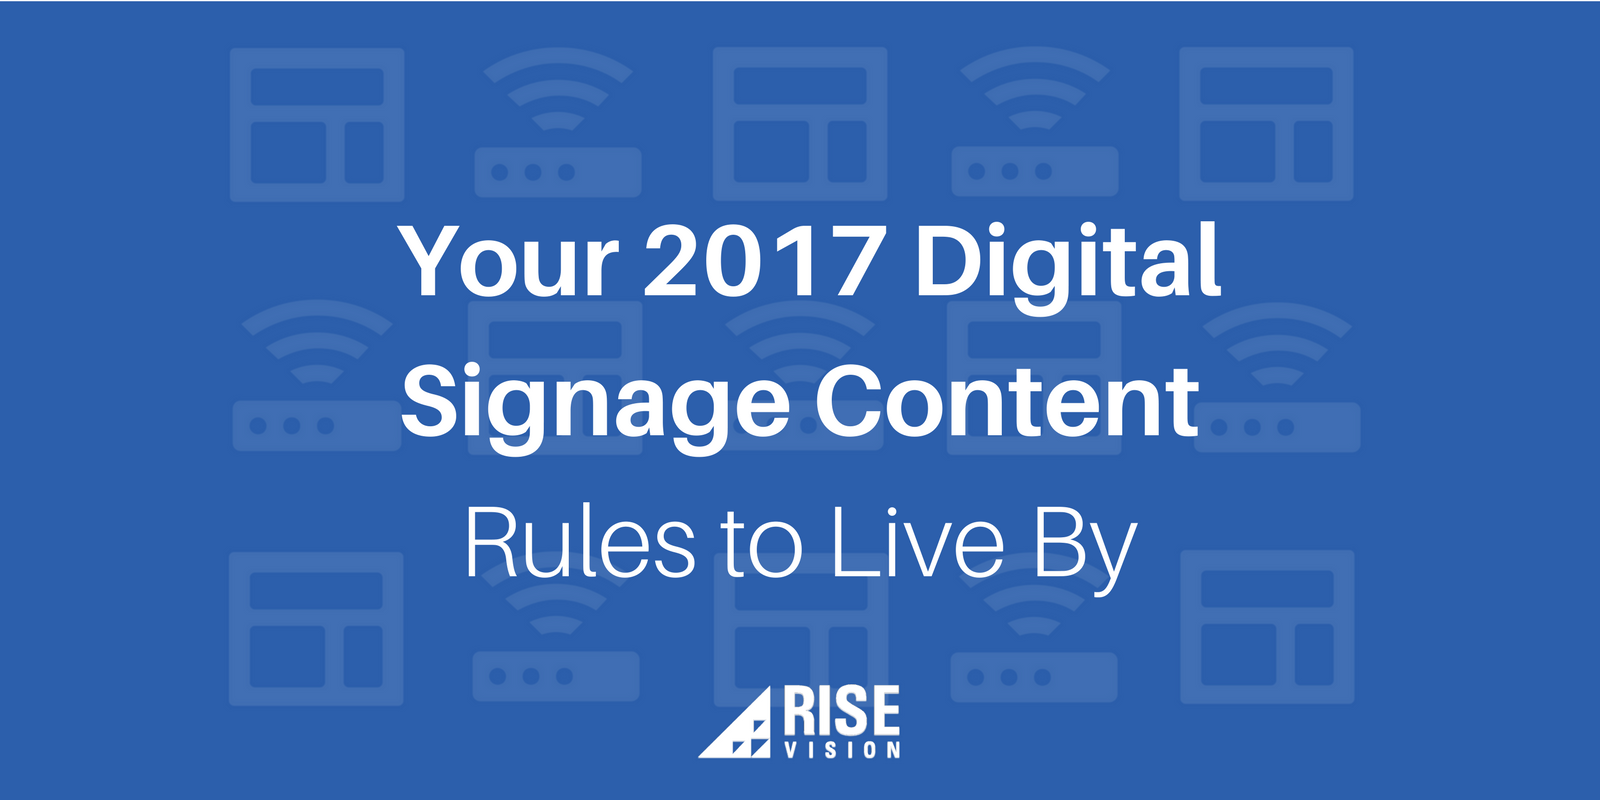 Rise Vision 2017 Digital Signage Content Rules to Live By